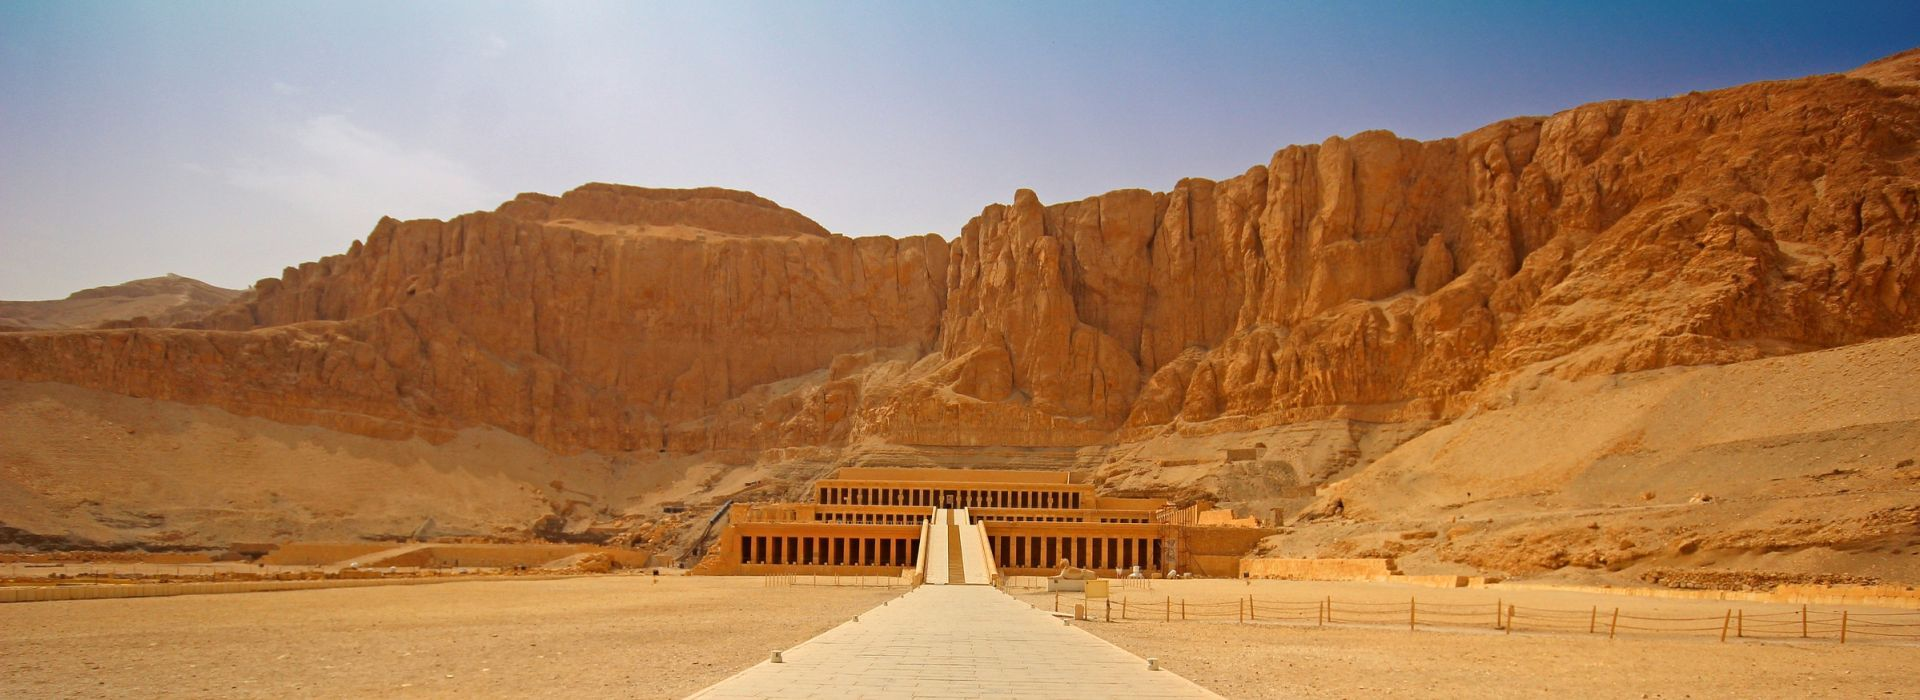 City sightseeing Tours in Egypt